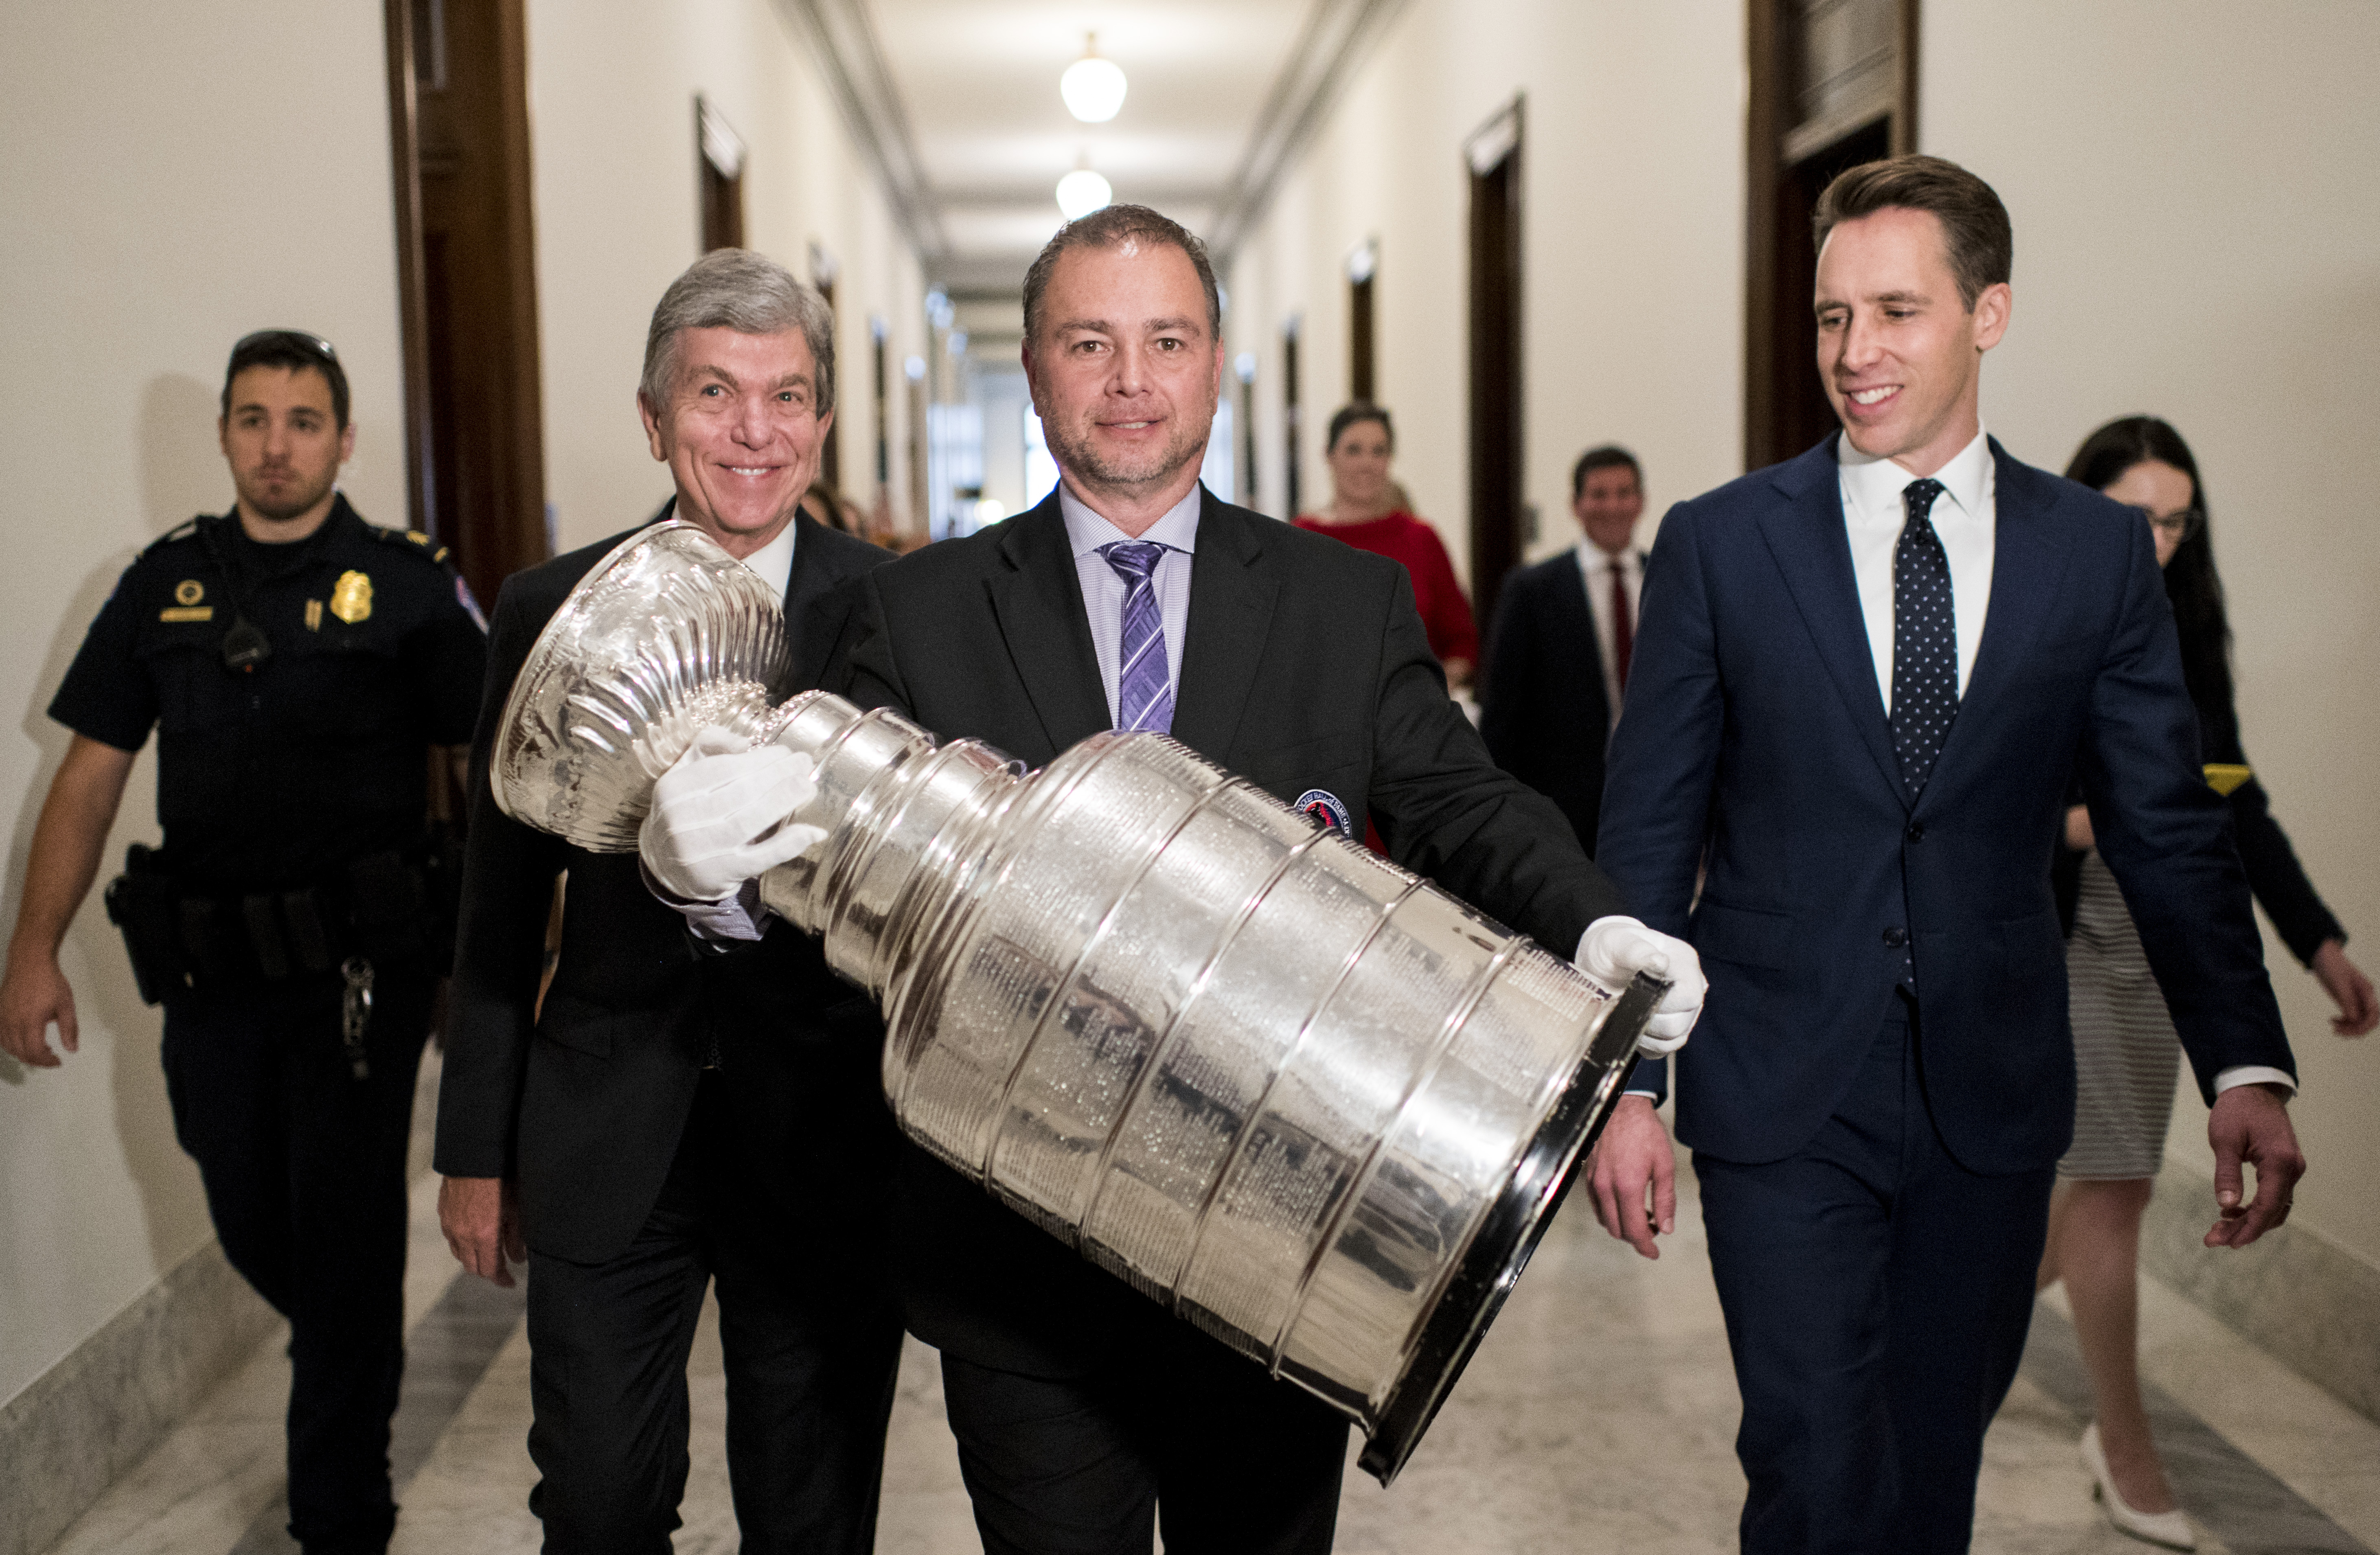 UNITED STATES - OCTOBER 16: Sen. Roy Blunt, R-Mo., and Sen. Josh Hawley, R-Mo., escort the Stanley Cup to the Kennedy Caucus Room in the Russell Senate Office Building on Wednesday, Oct. 16, 2019. The St. Louis Blues won the cup this year. (Photo By Bill Clark/CQ Roll Call)